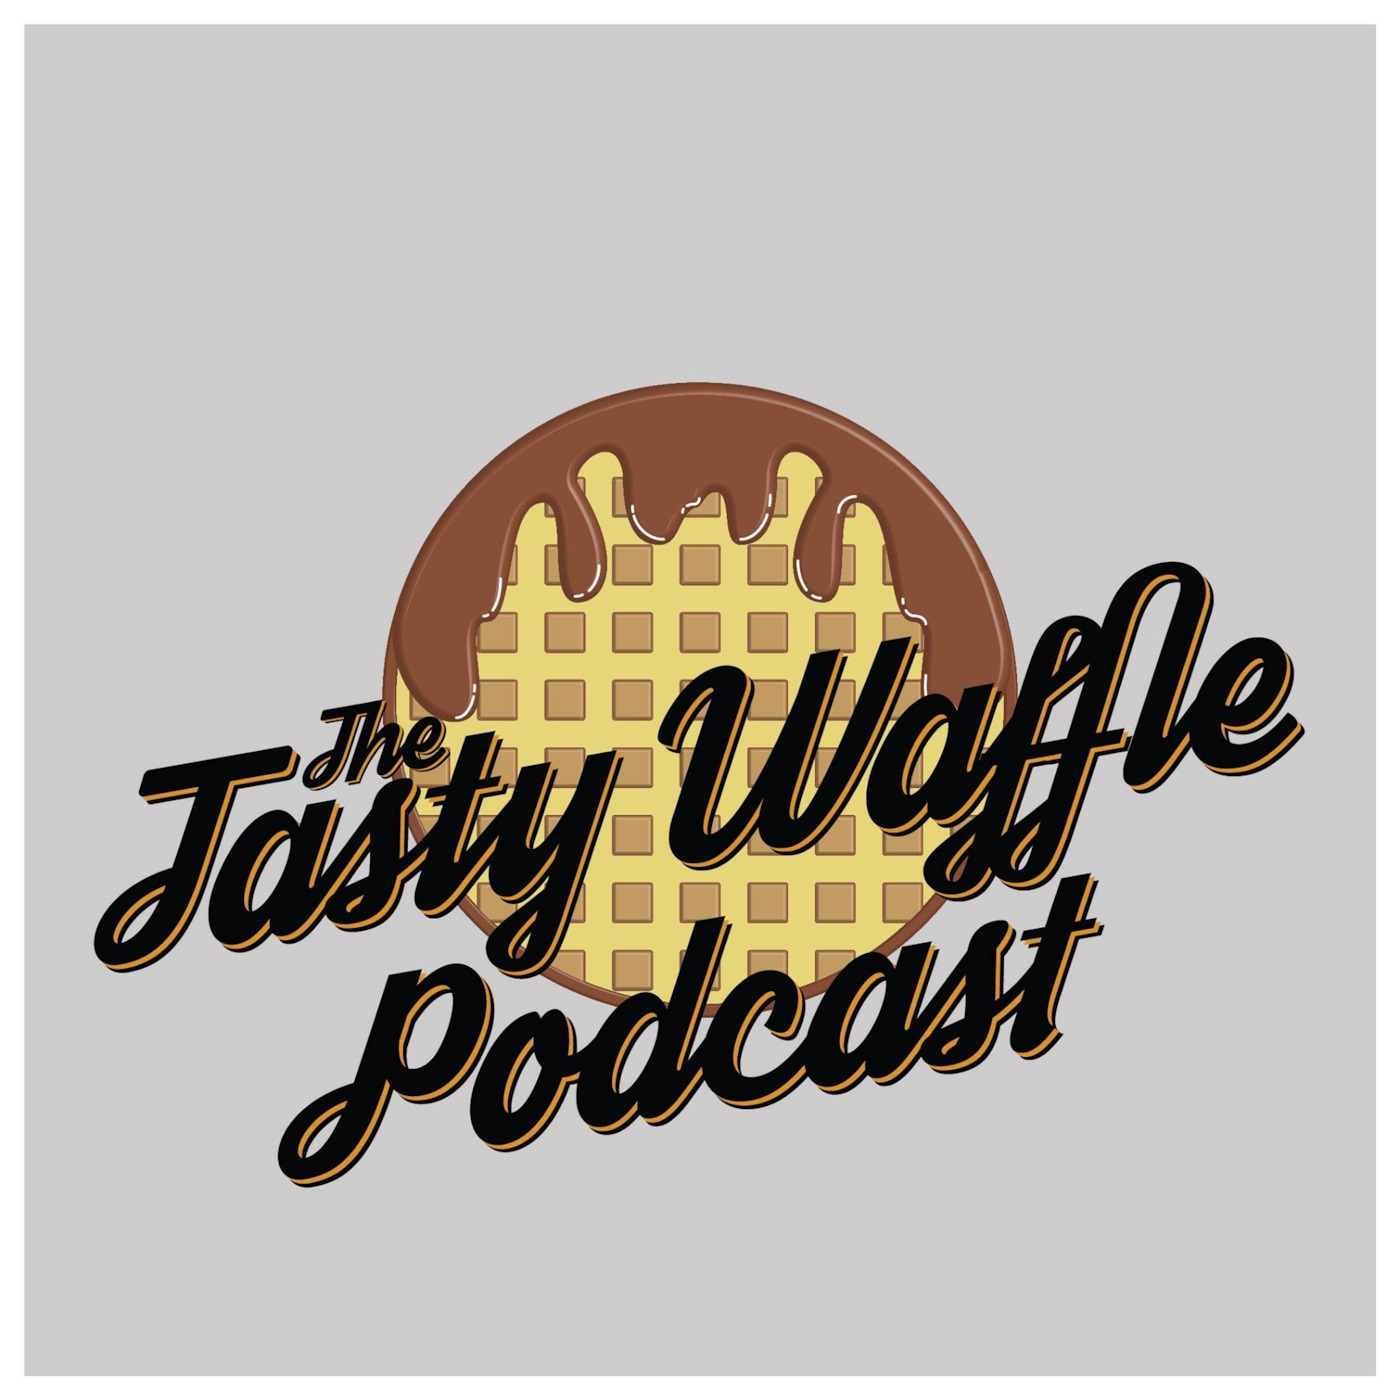 The Tasty Waffle Podcast